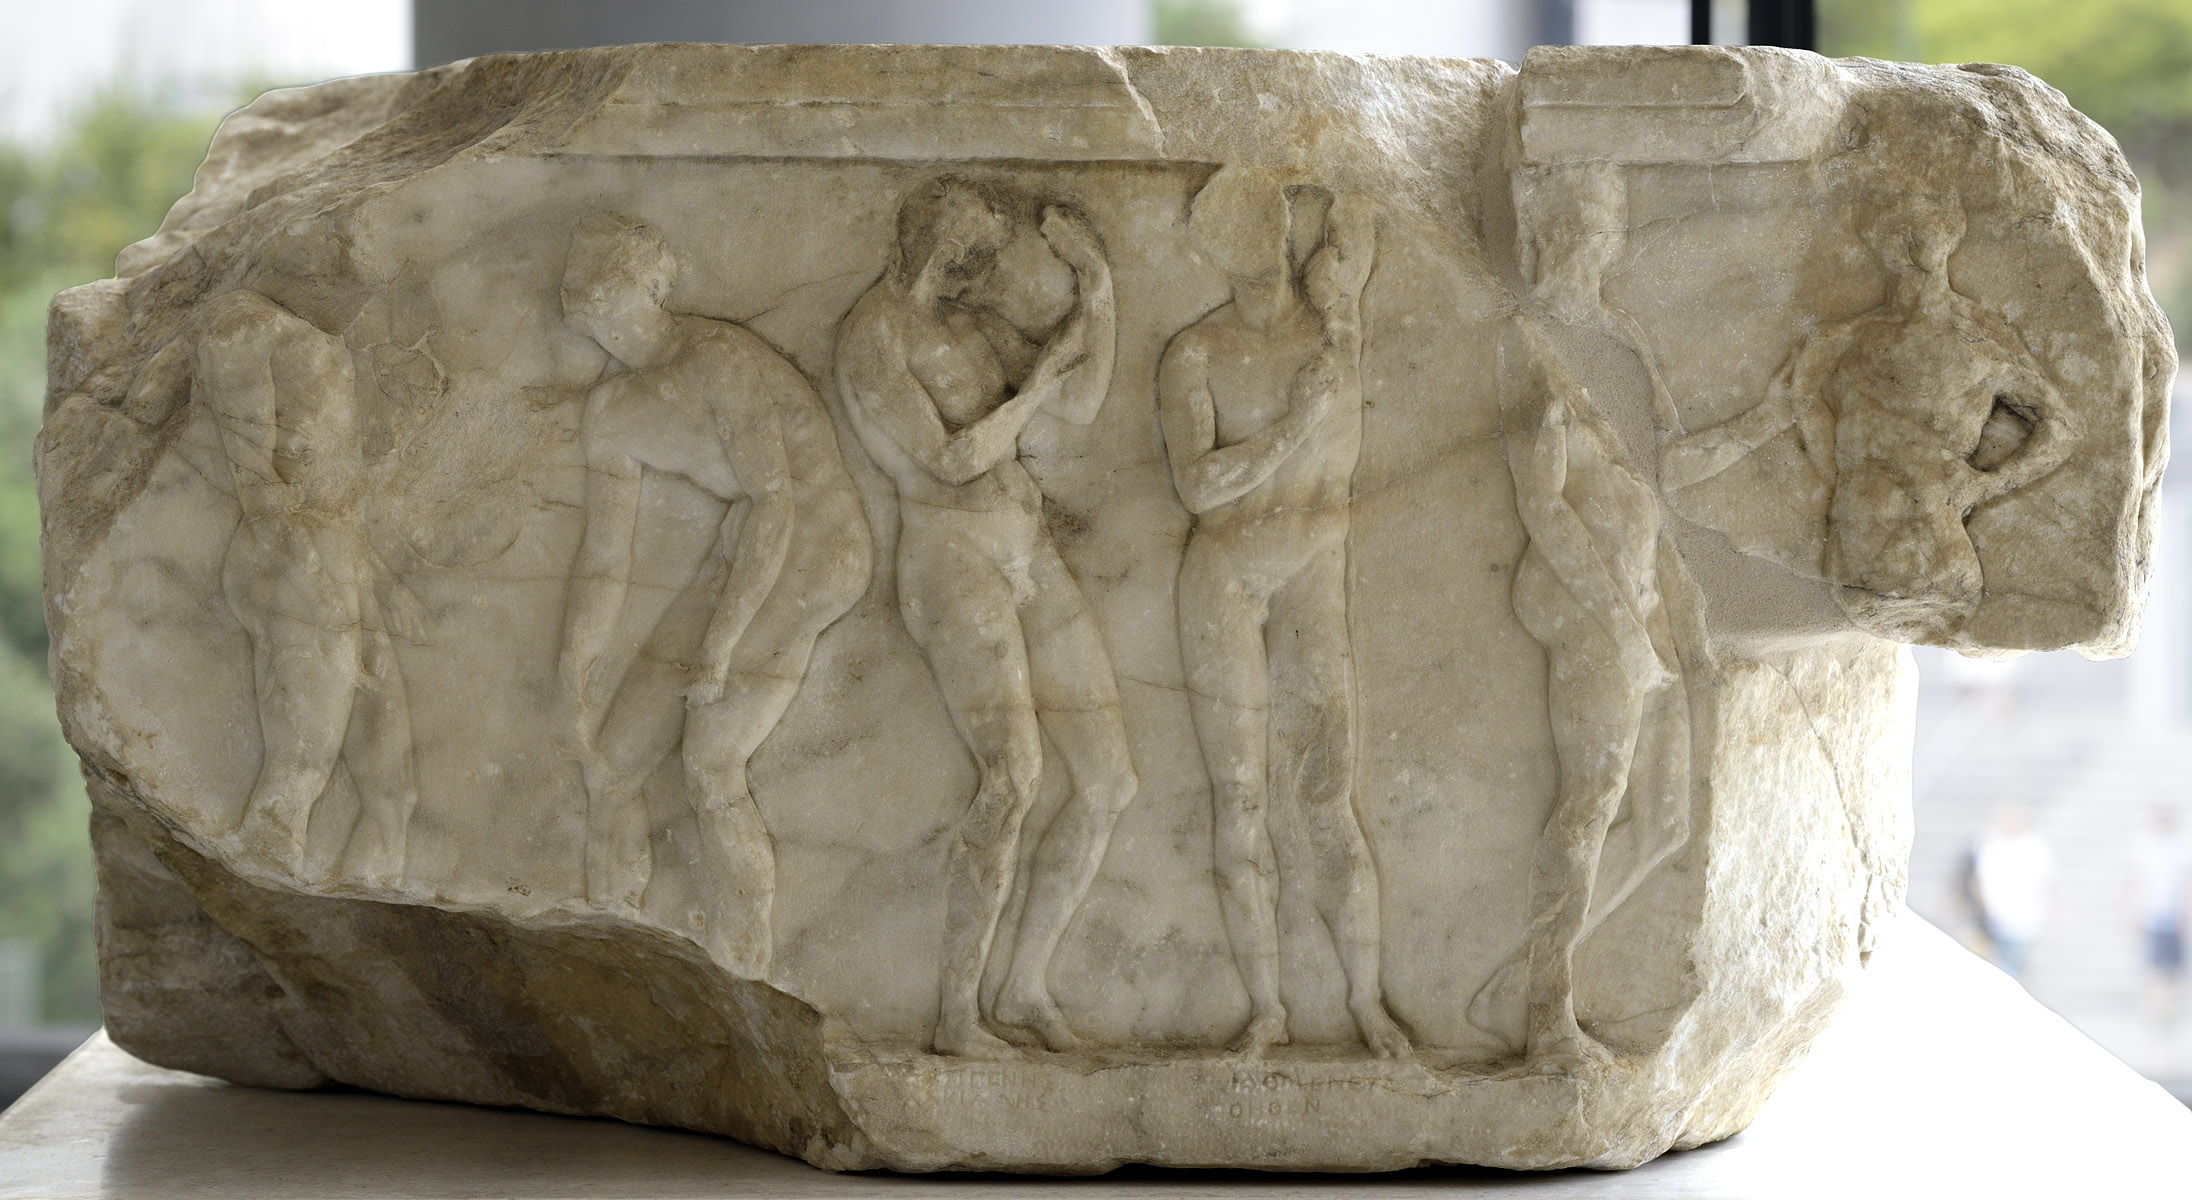 Base of a dedication statue with a depiction of athlets after the contest. Marble. 330 BCE. Inv. No. Acr. 3176. Athens, New Acropolis Museum